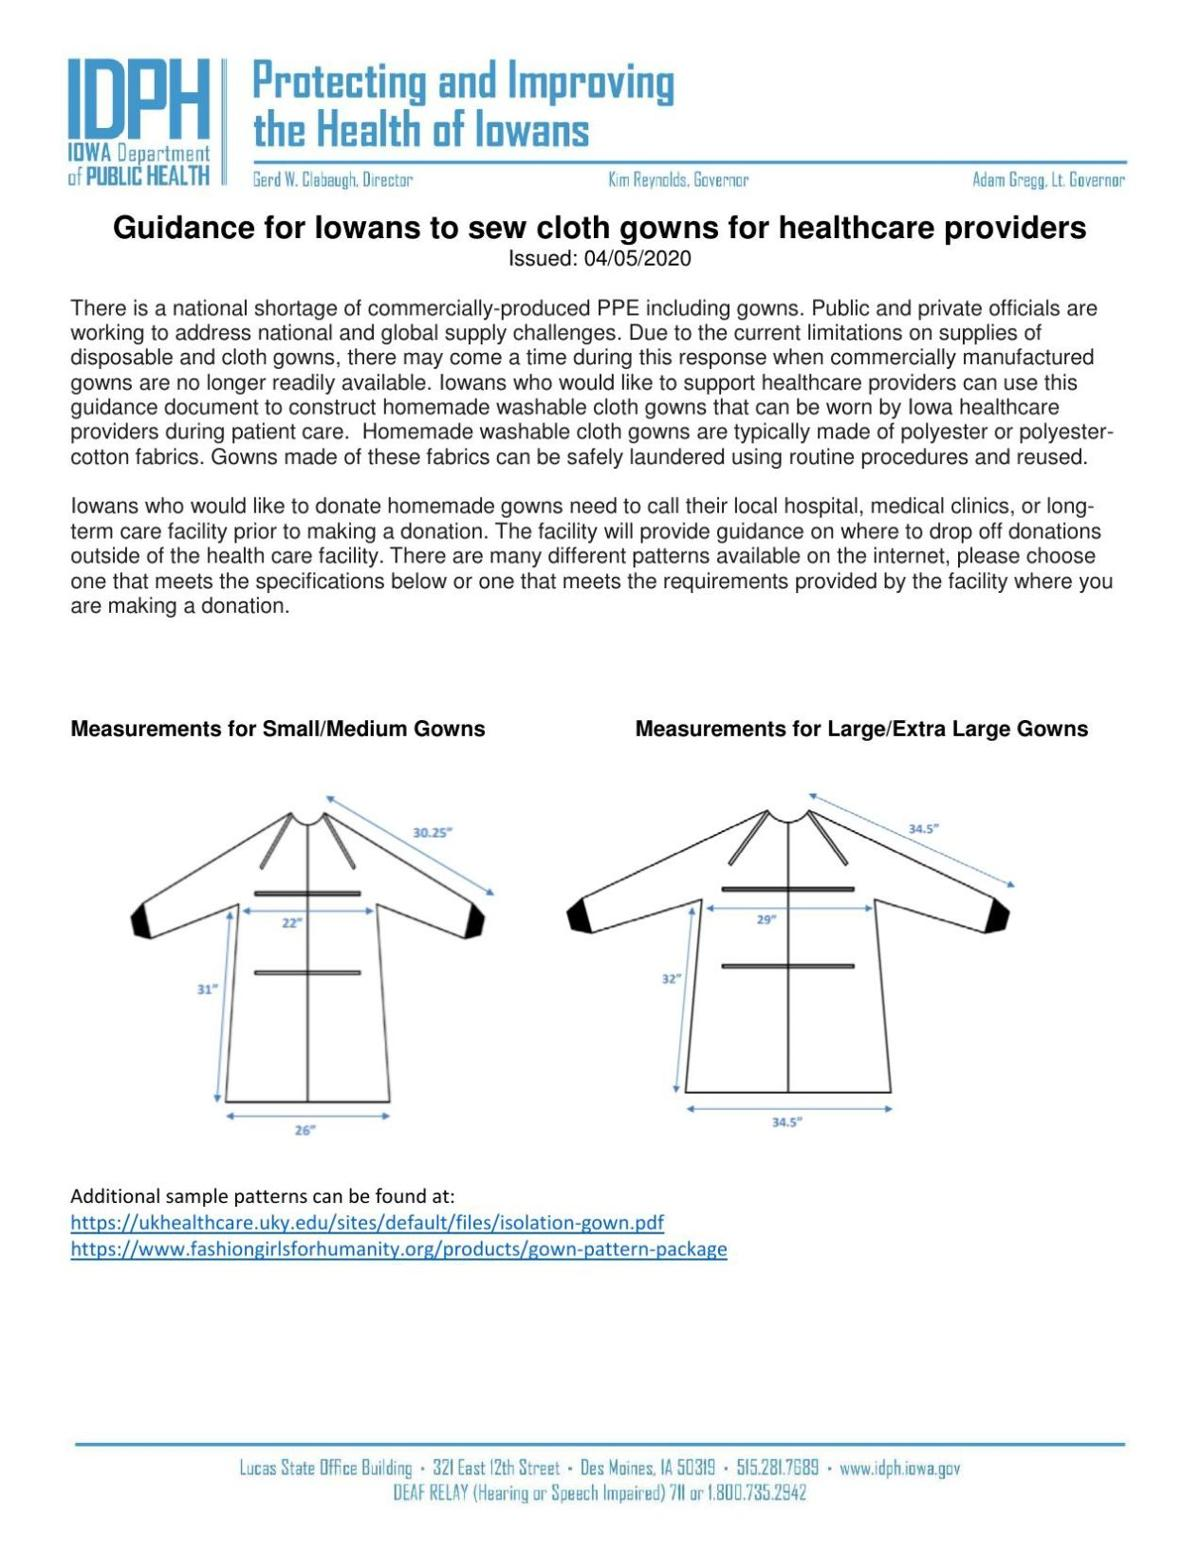 IDP gown instructions